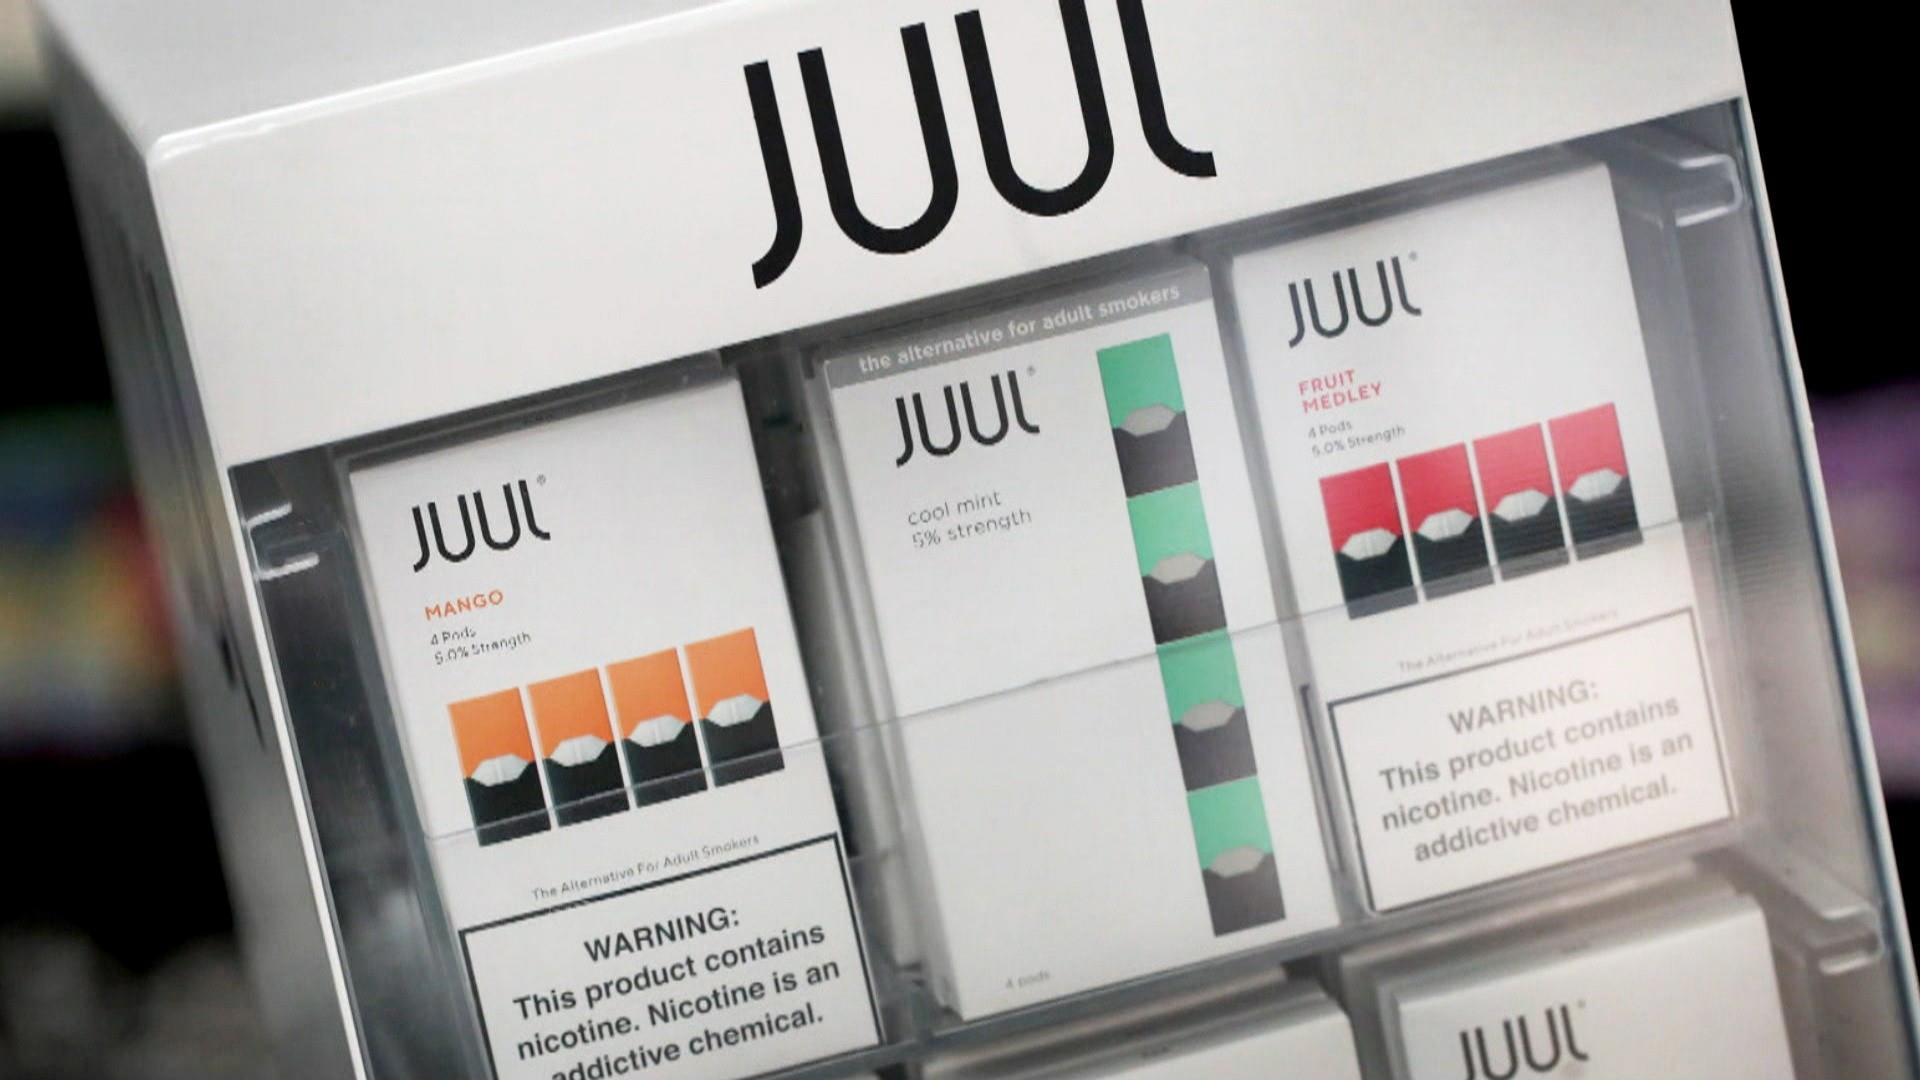 Juul CEO steps down amid intense company scrutiny